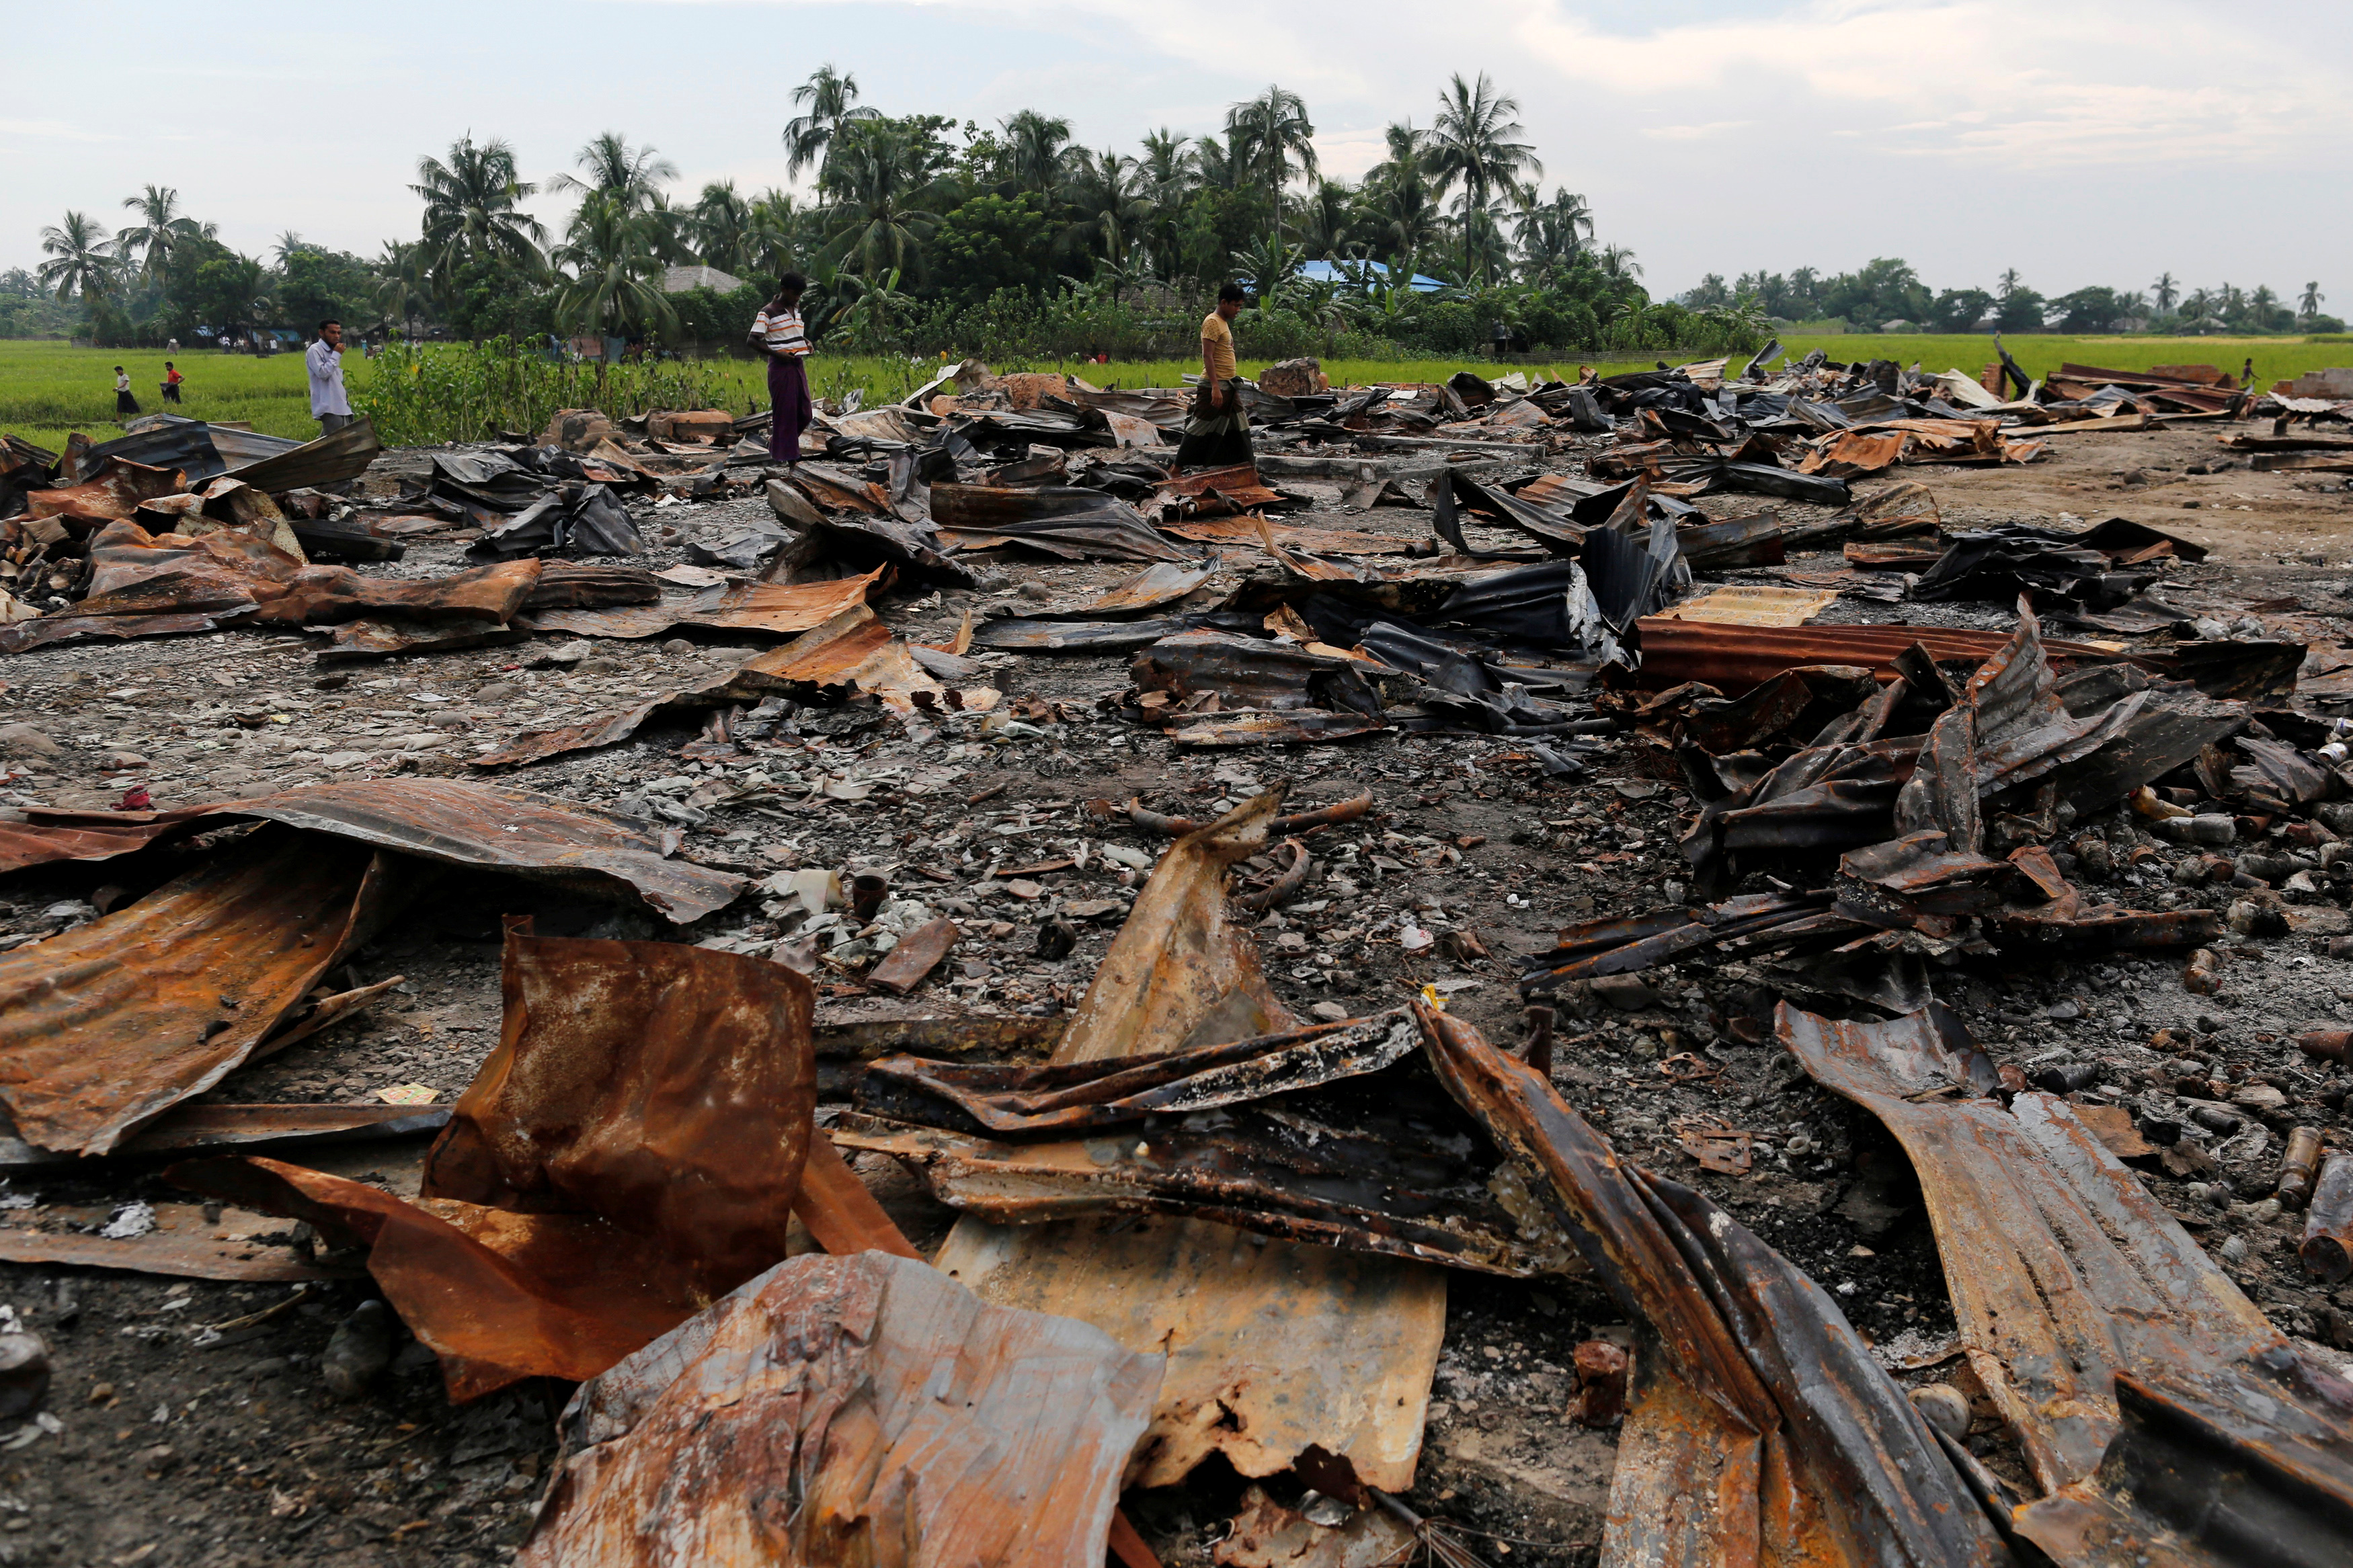 The ruins of a market, which was set on fire, are seen at a Rohingya village outside Maungdaw in Arakan State on 27 October 2016. (Photo: Reuters)